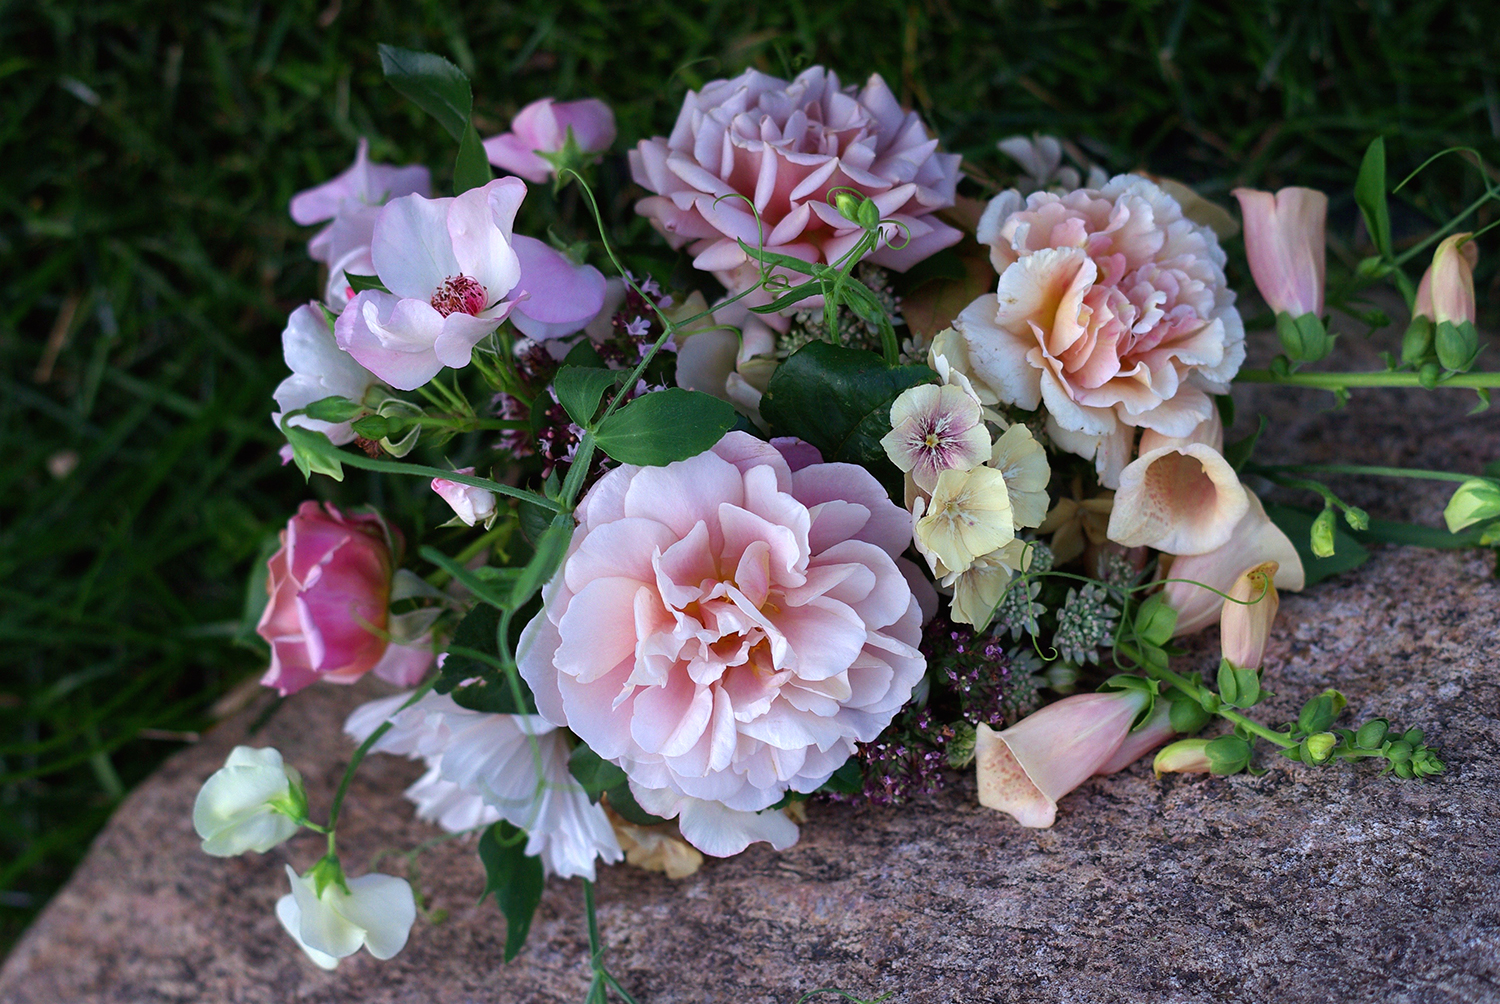 Late July - the first real flush of roses (!), sweet peas, cosmos, oregano, astrantia, phlox, foxglove